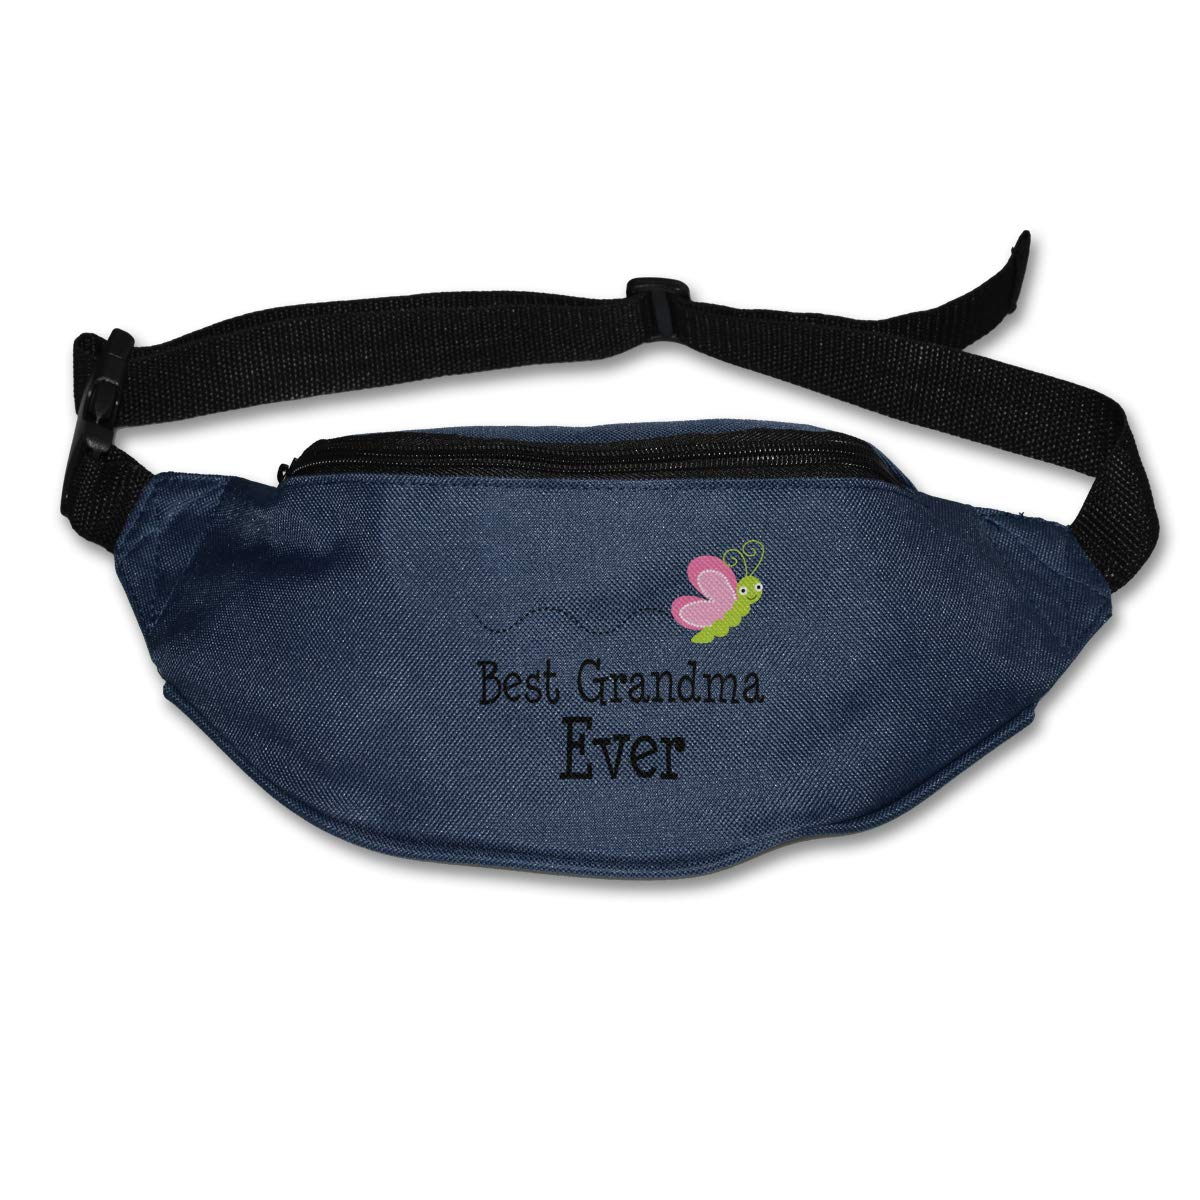 Best Grandma Ever Sport Waist Packs Fanny Pack Adjustable For Run